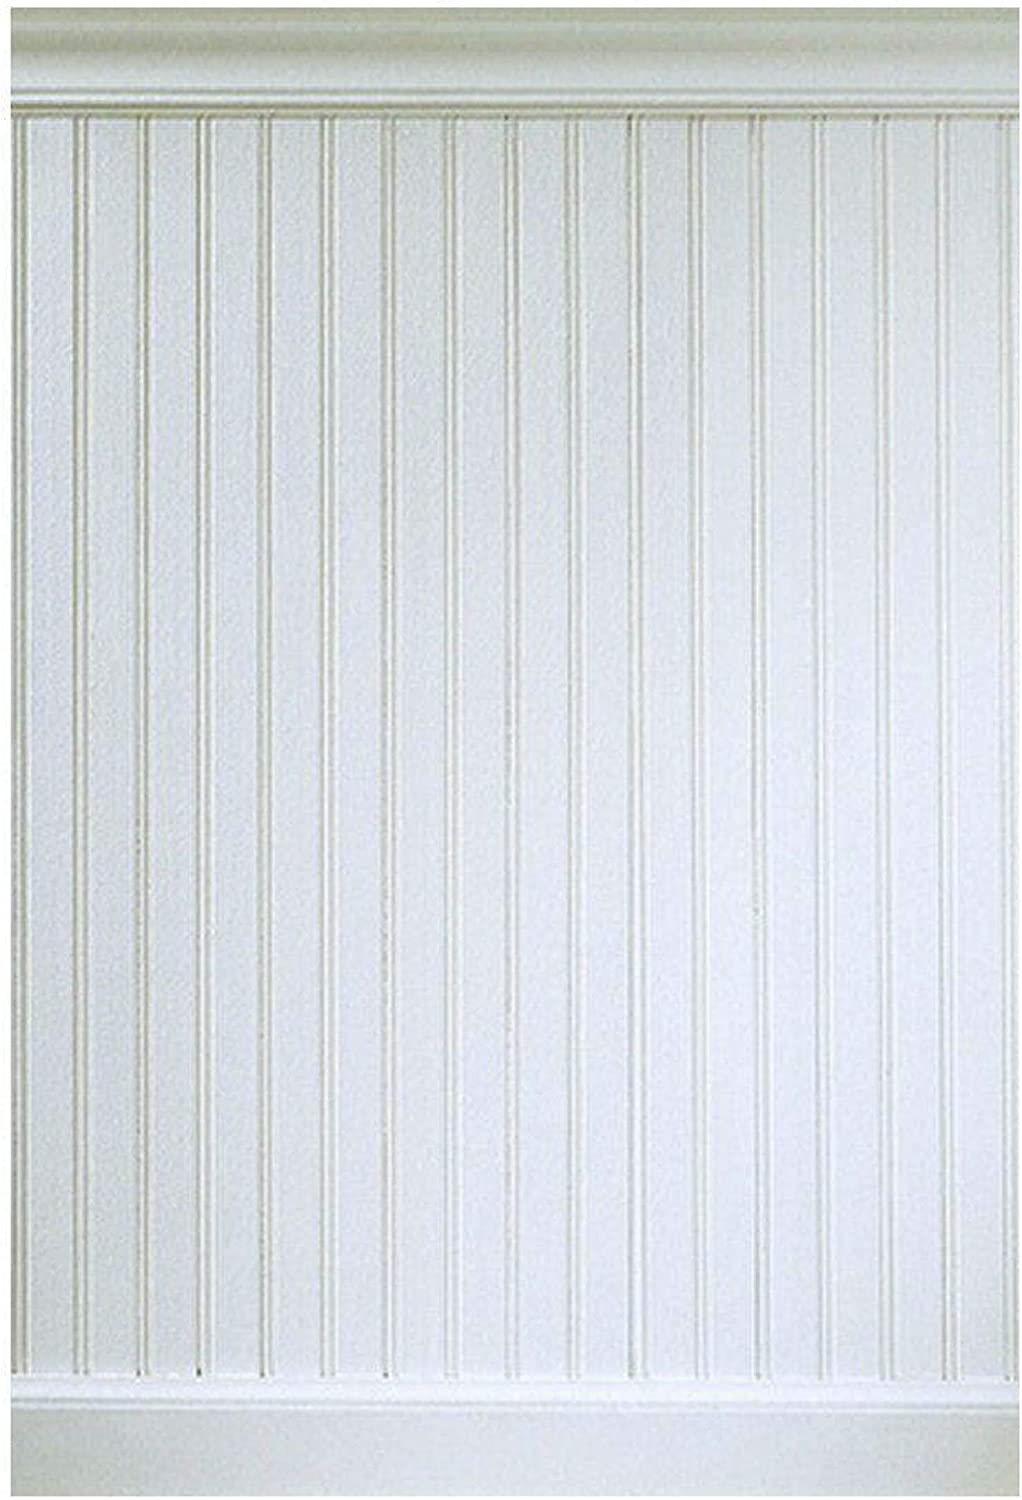 Manor Challenge the lowest price of Japan ☆ House 8 Linear ft. Mesa Mall Overlapping Wainscot Paneling Kit MDF